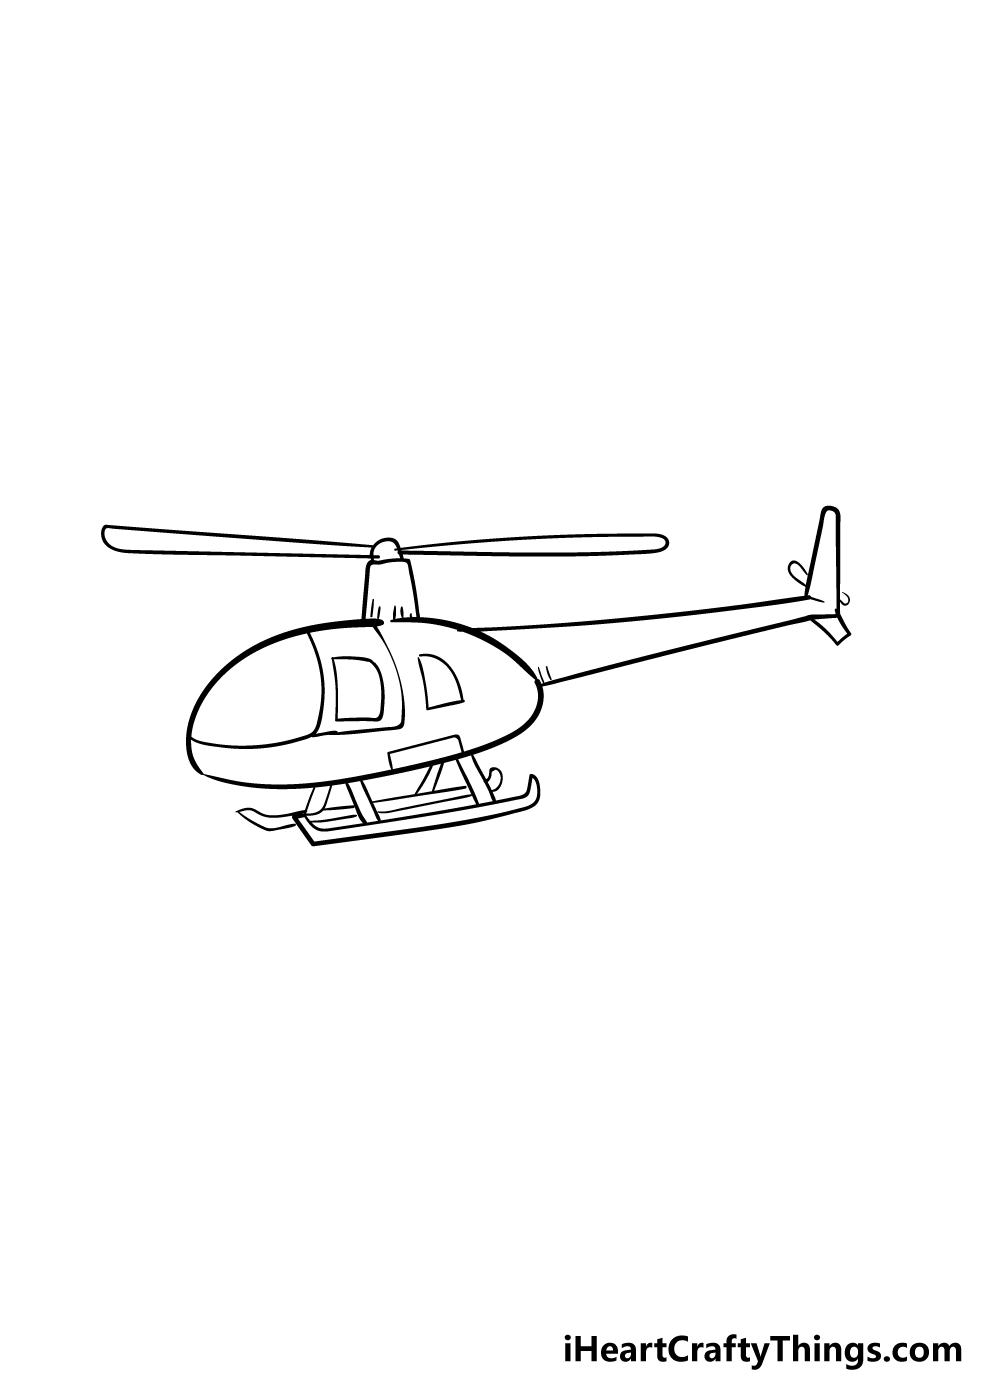 helicopter drawing step 5